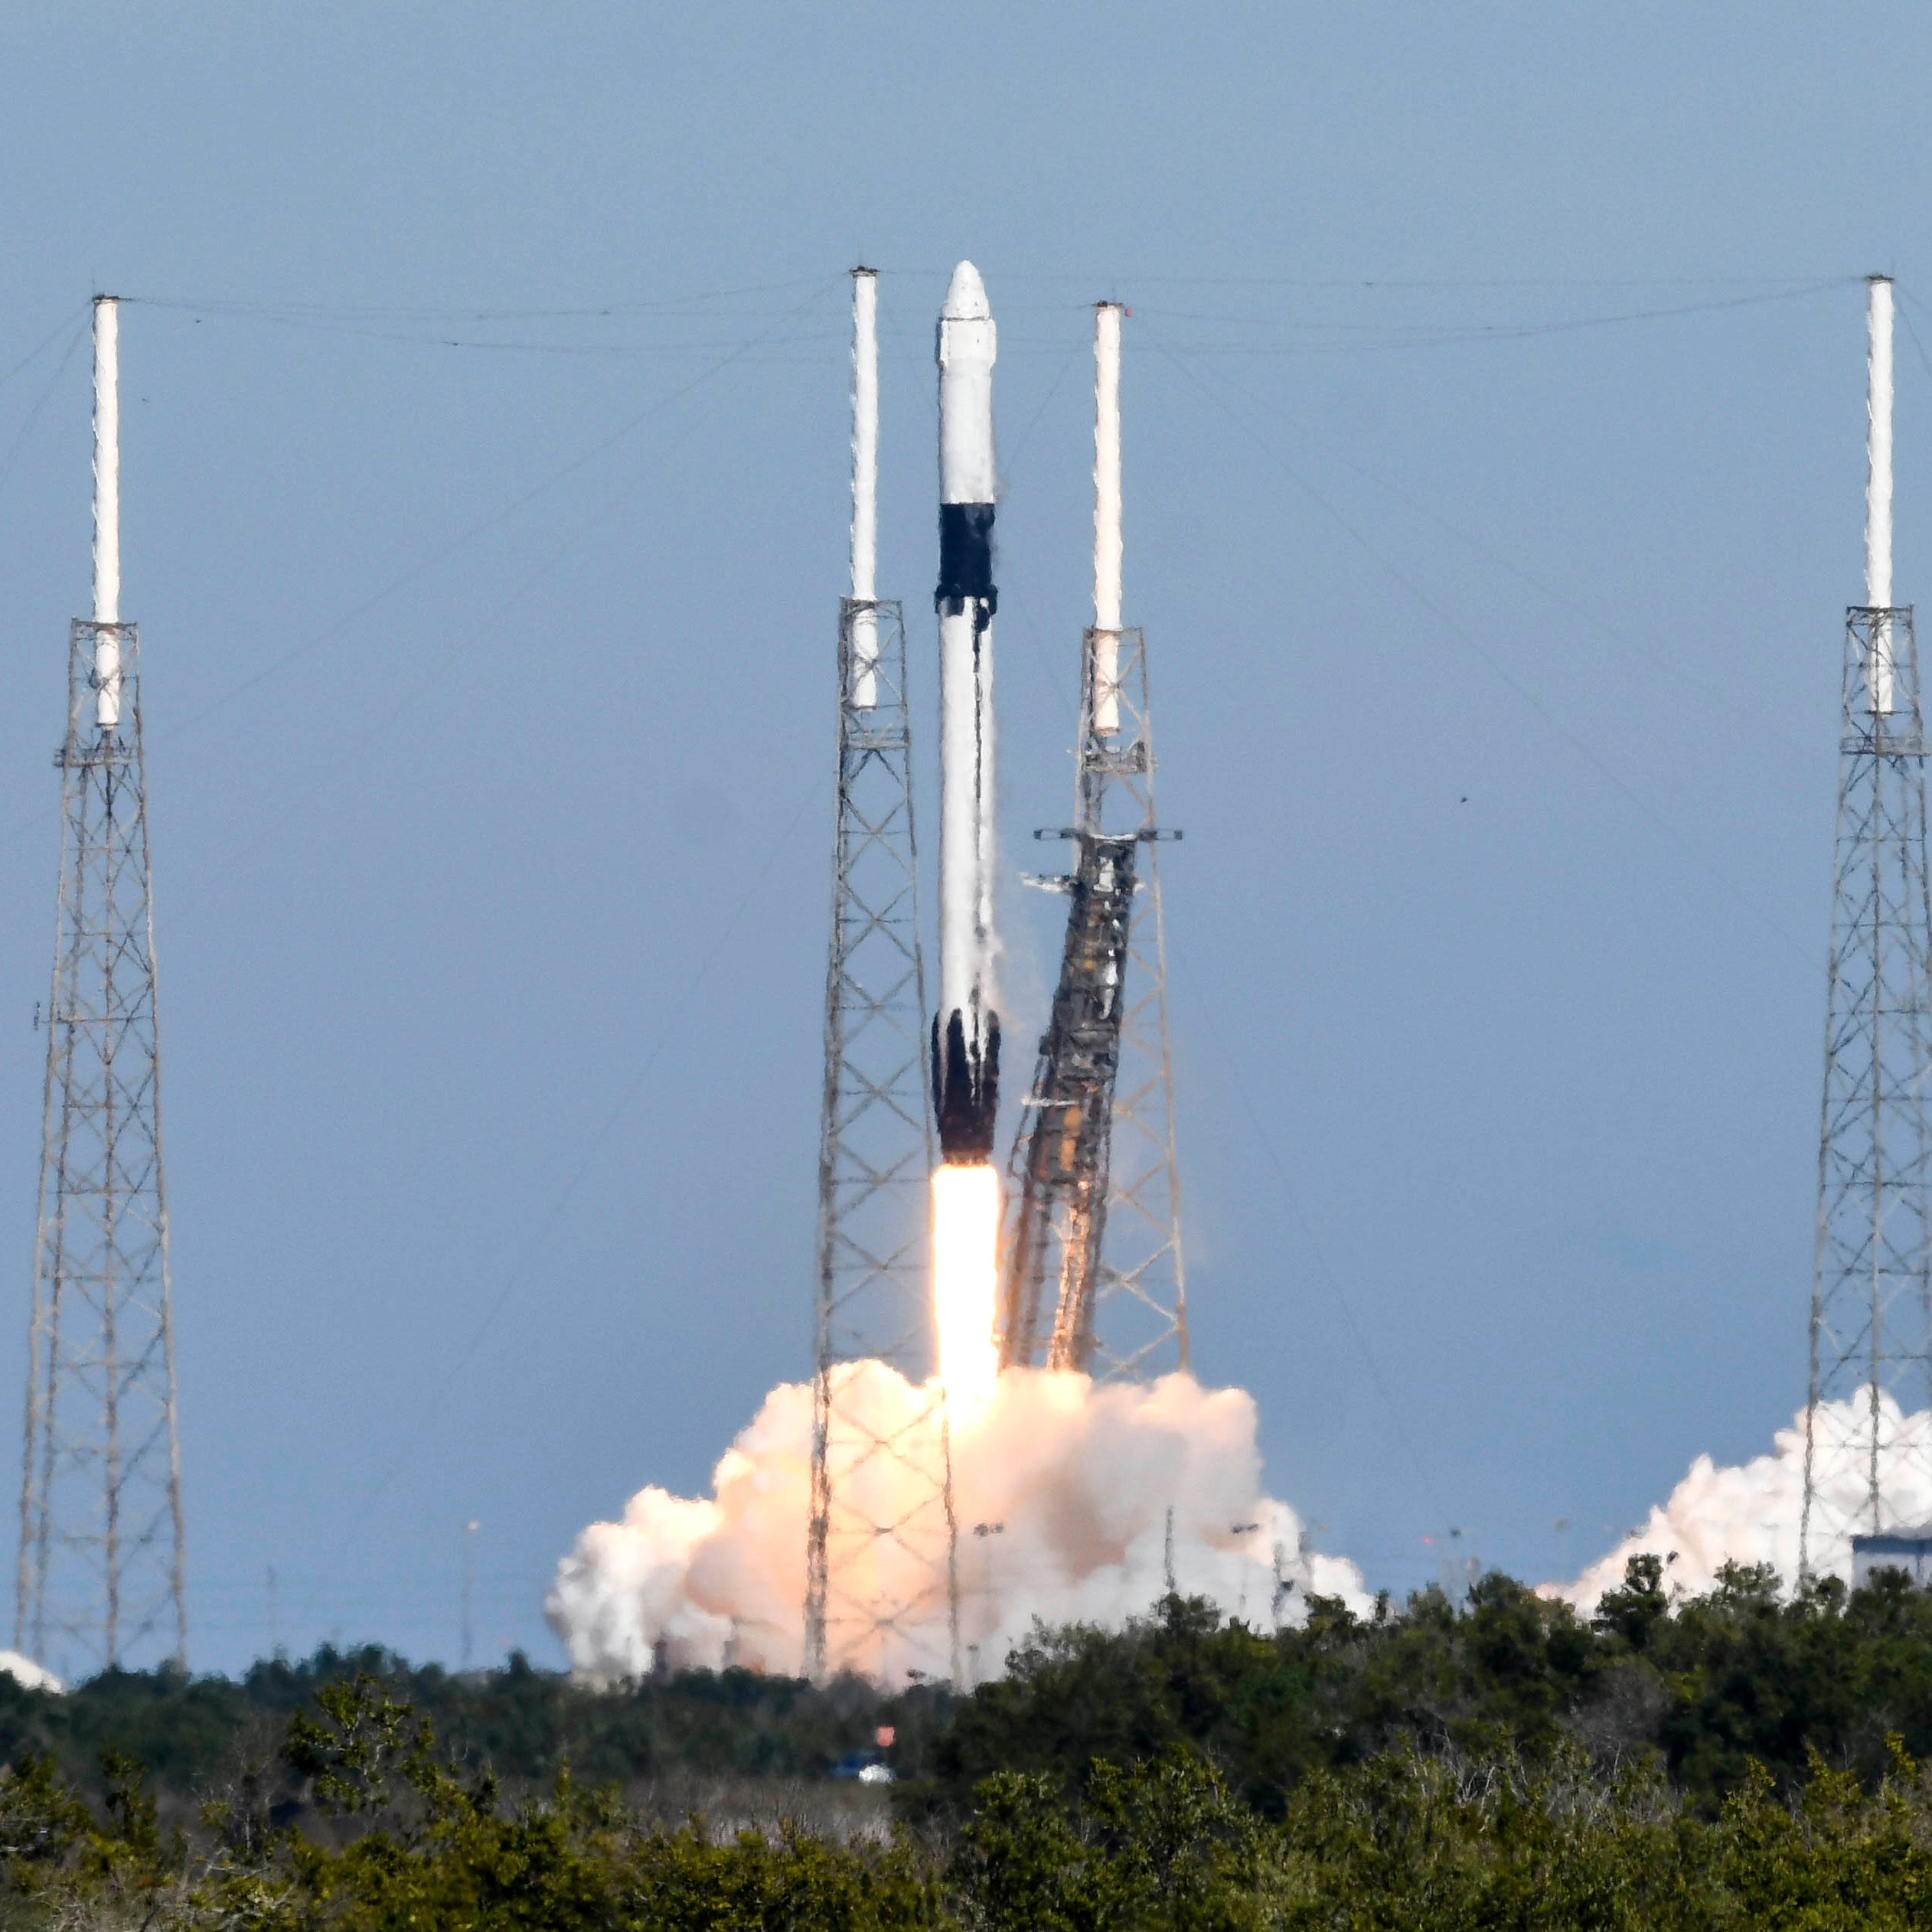 SpaceX Dragon spacecraft set for ISS departure and Pacific Ocean splashdown